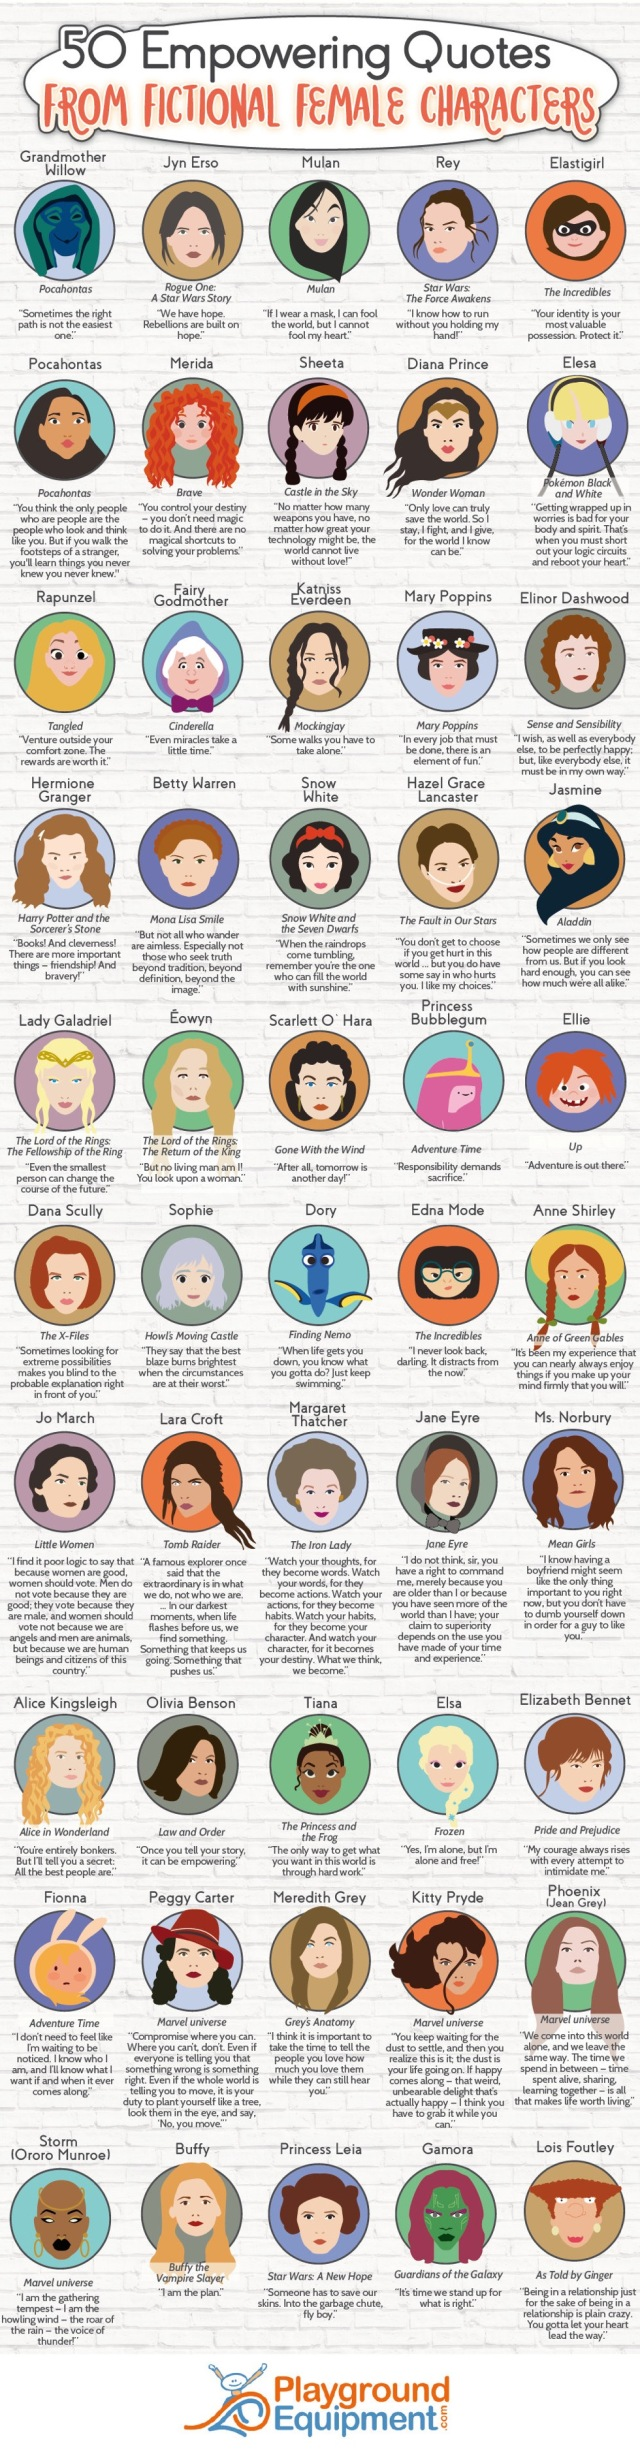 50 empowering quotes female characters.jpg